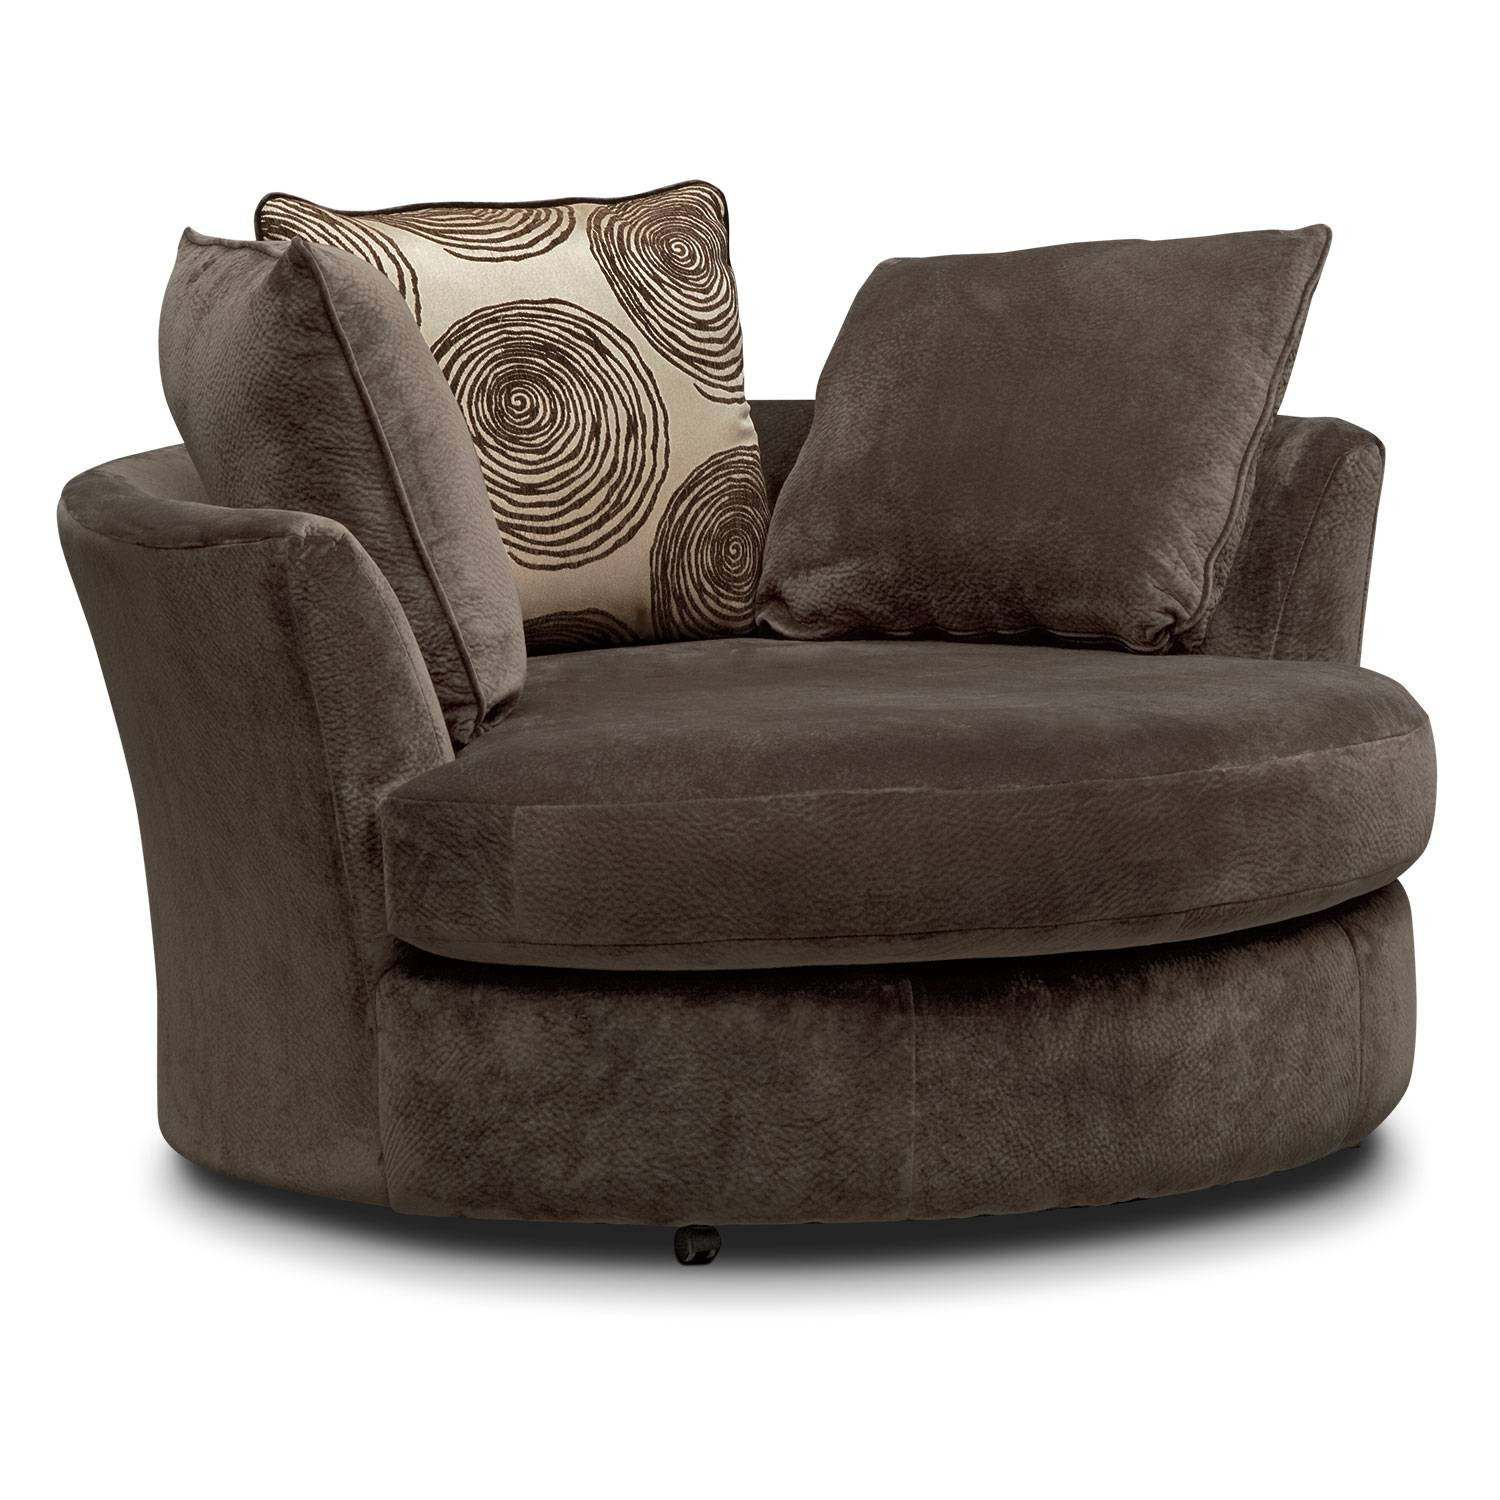 Cordelle Sofa And Swivel Chair Set - Chocolate | Value City Furniture with Sofa And Chair Set (Image 14 of 30)